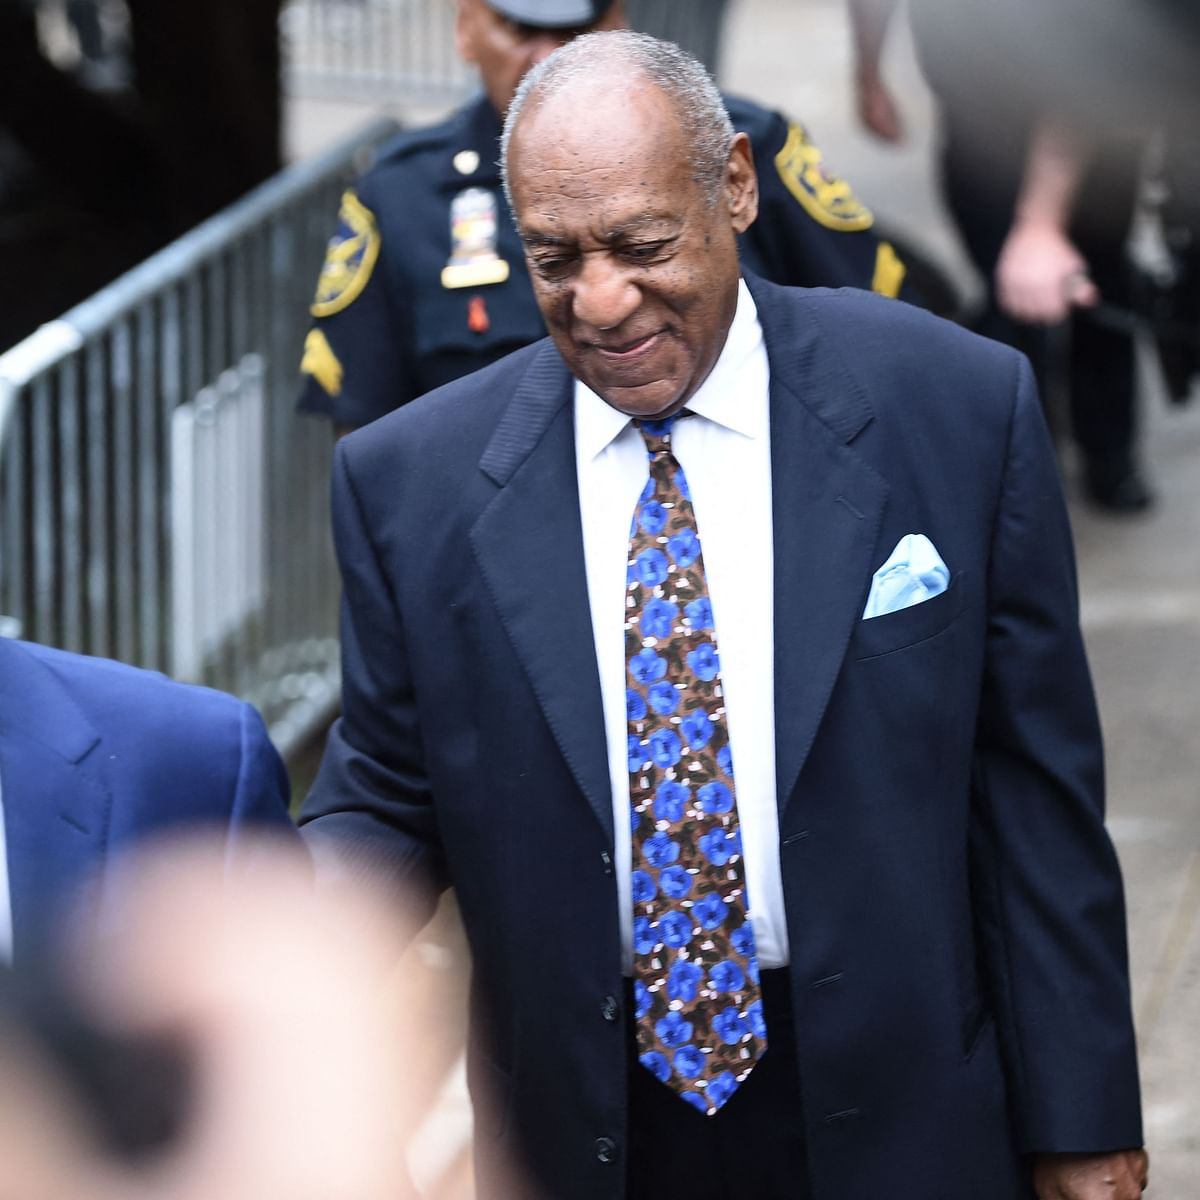 Comedian Bill Cosby freed from prison as top Pennsylvania court overturns his sexual assault conviction